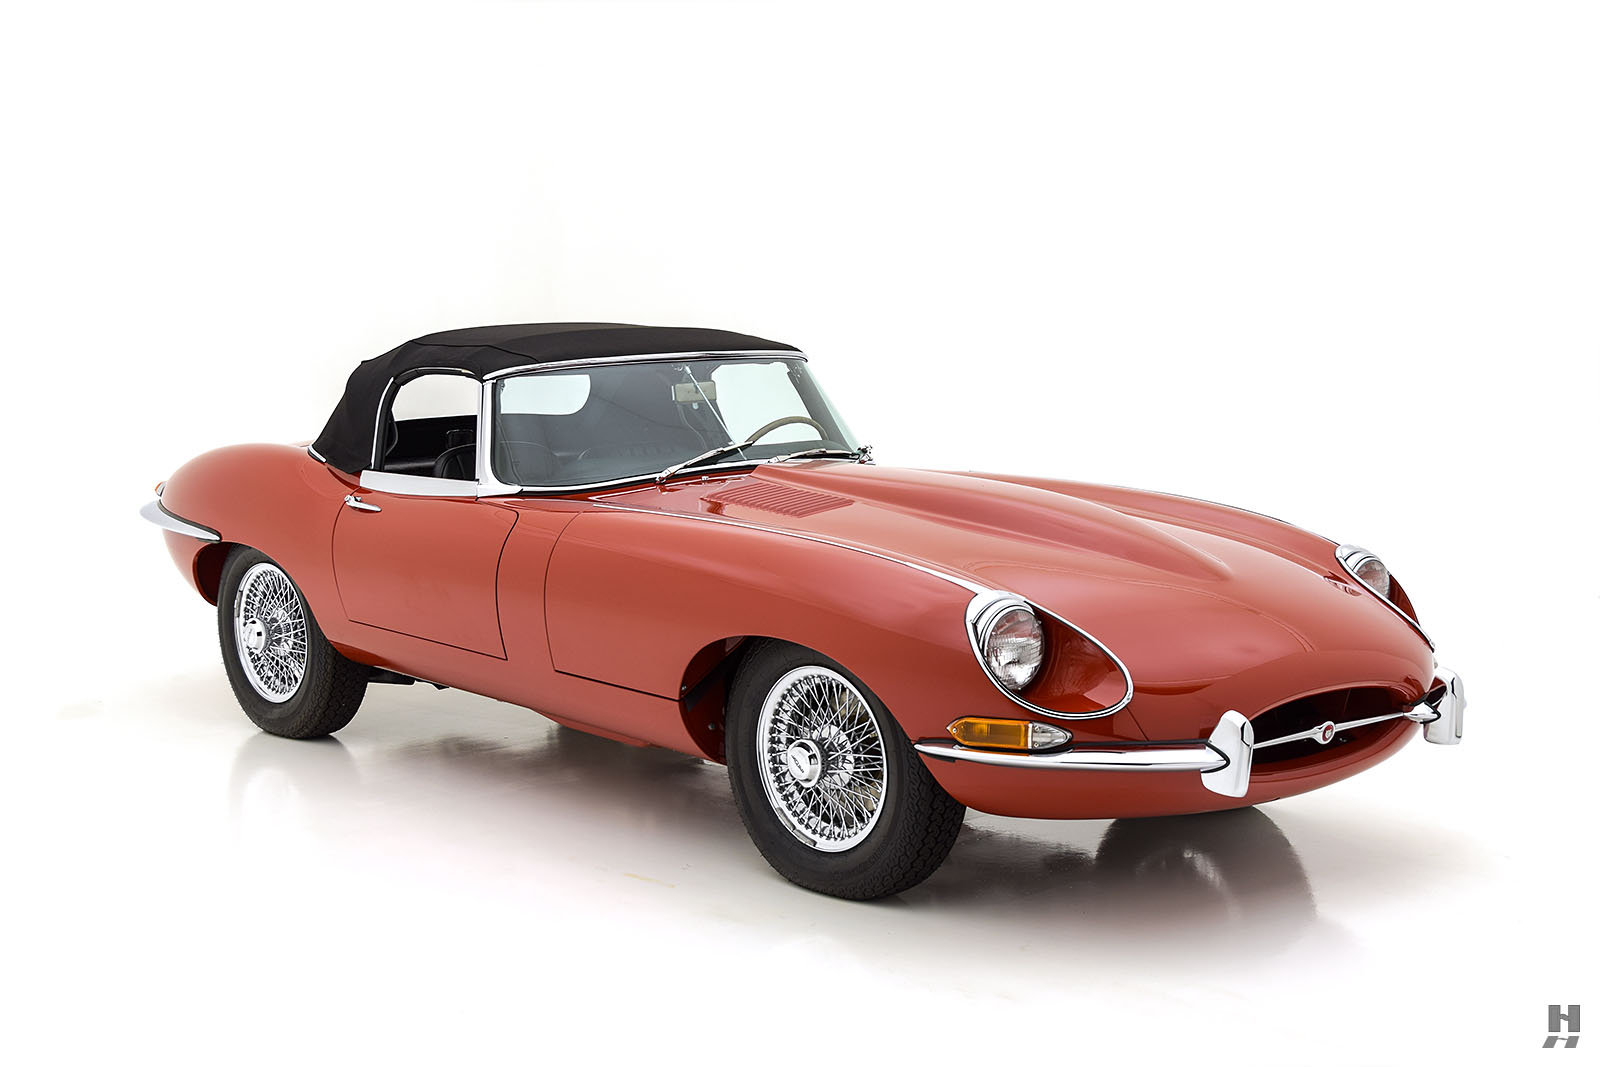 1968 JAGUAR E-TYPE ROADSTER For Sale (picture 2 of 6)